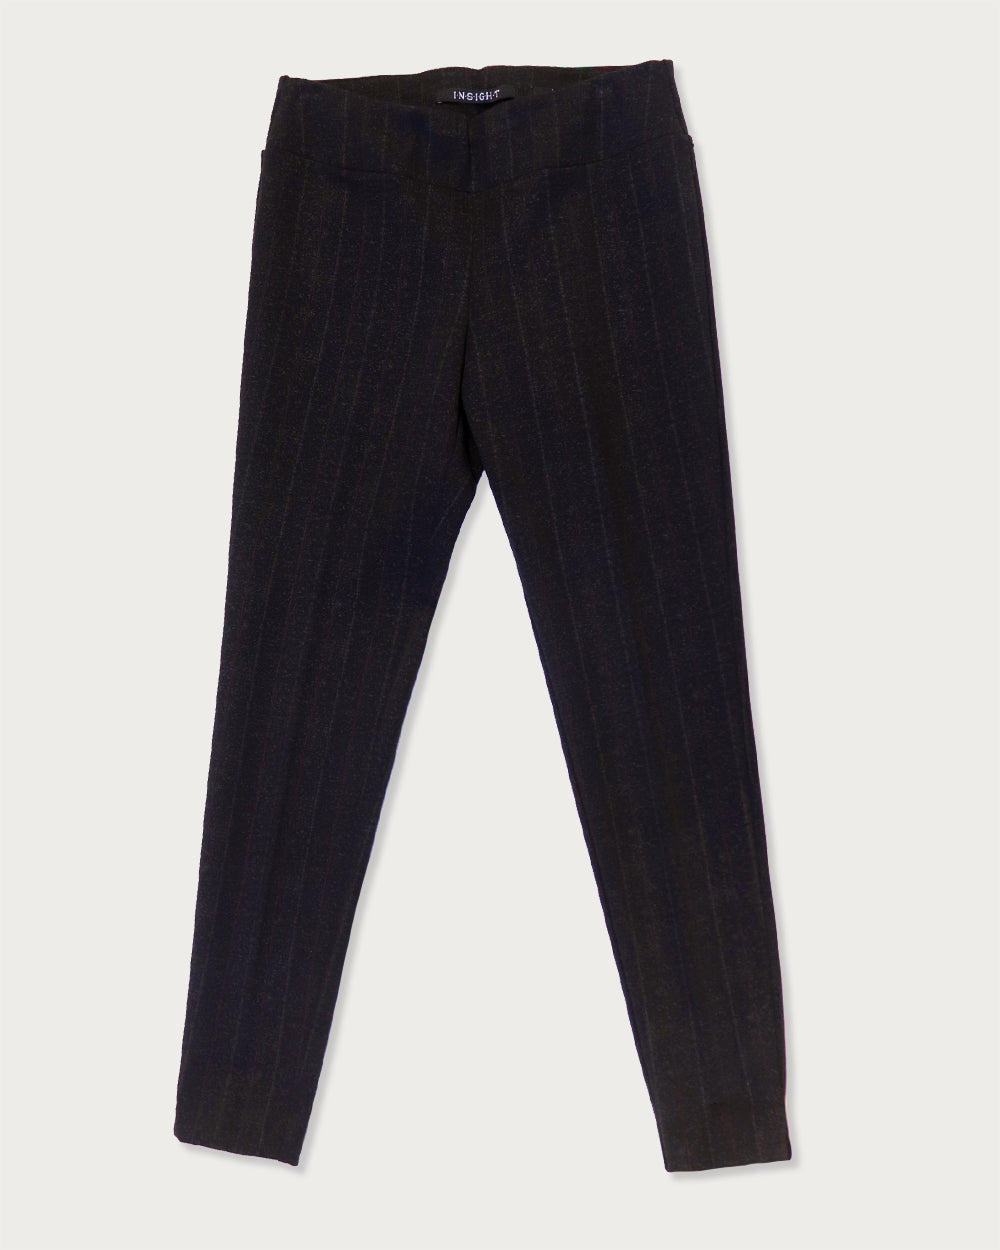 Insight Scuba Skinny - Brushed Pinstripe